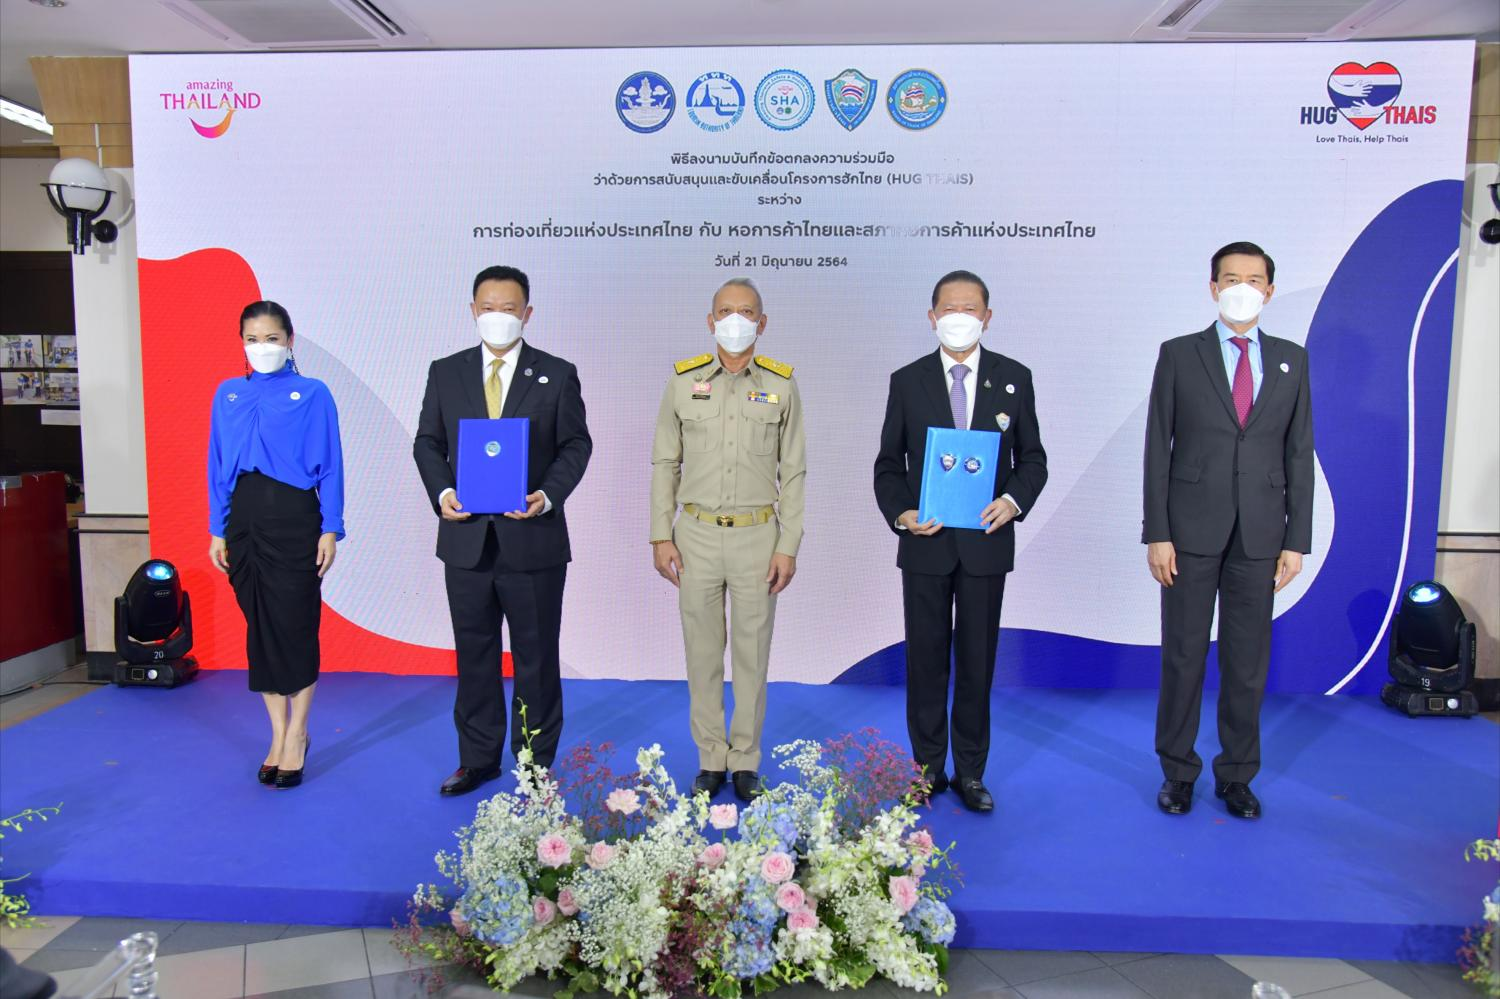 Tourism and Sports Minister Phiphat Ratchakitprakarn (centre) presided at the inauguration of the Hug Thais project yesterday which aims at encouraging Thais to use local products and boost domestic trips.